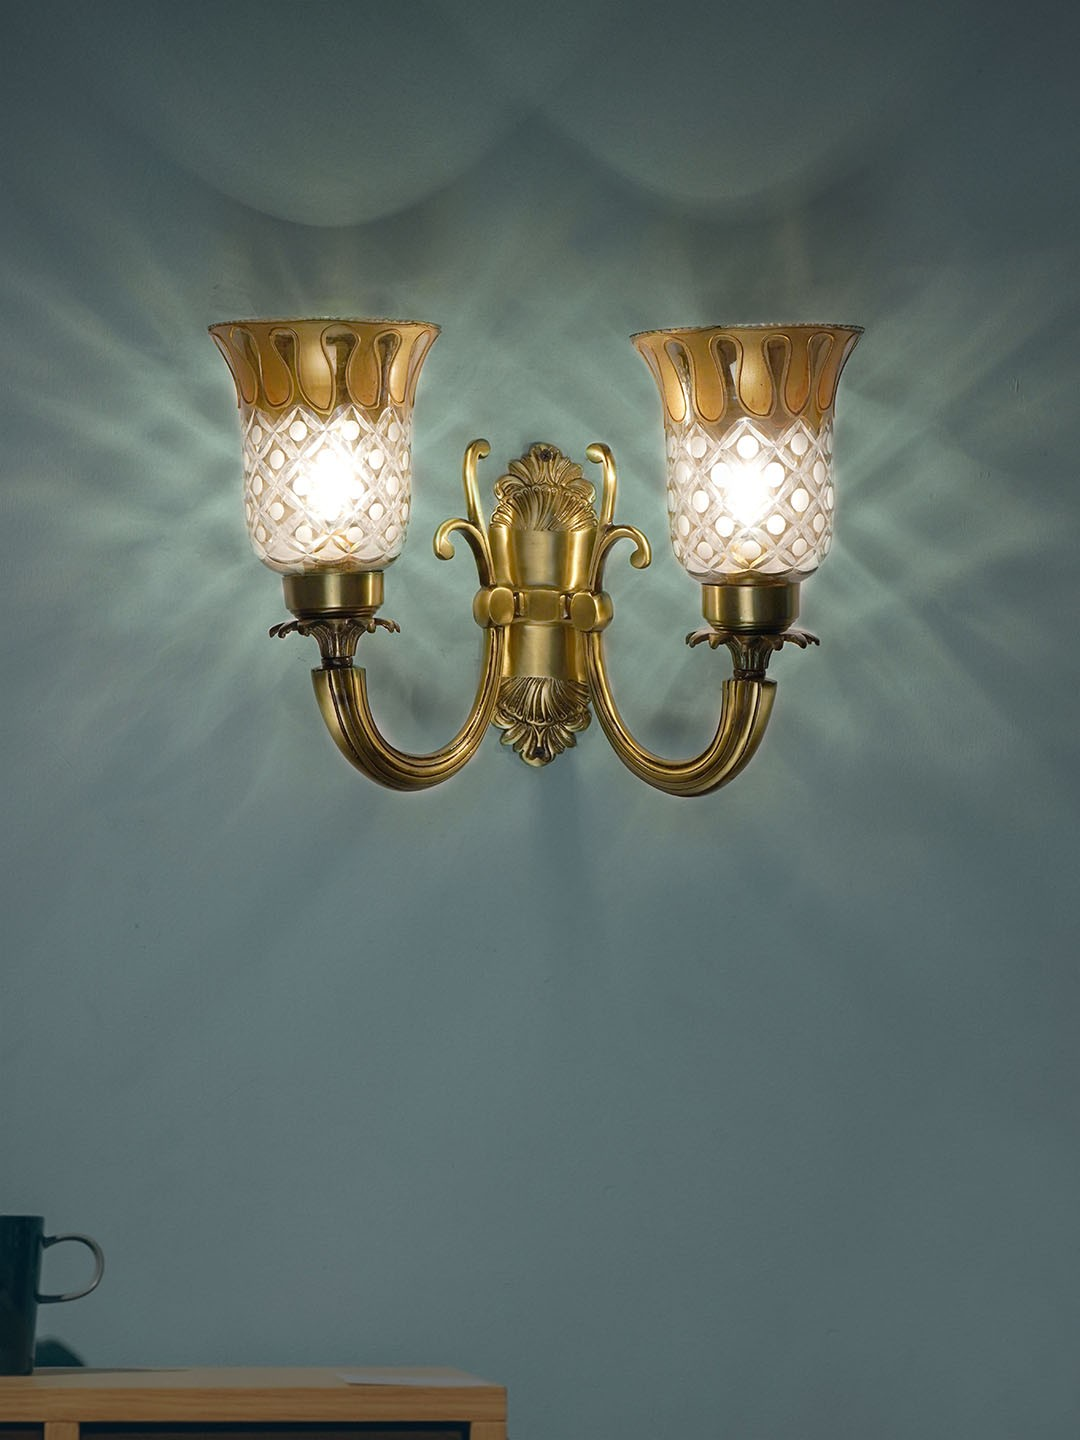 Royal Metal and Glass Double Wall Lamp - (Golden Work with Antique)